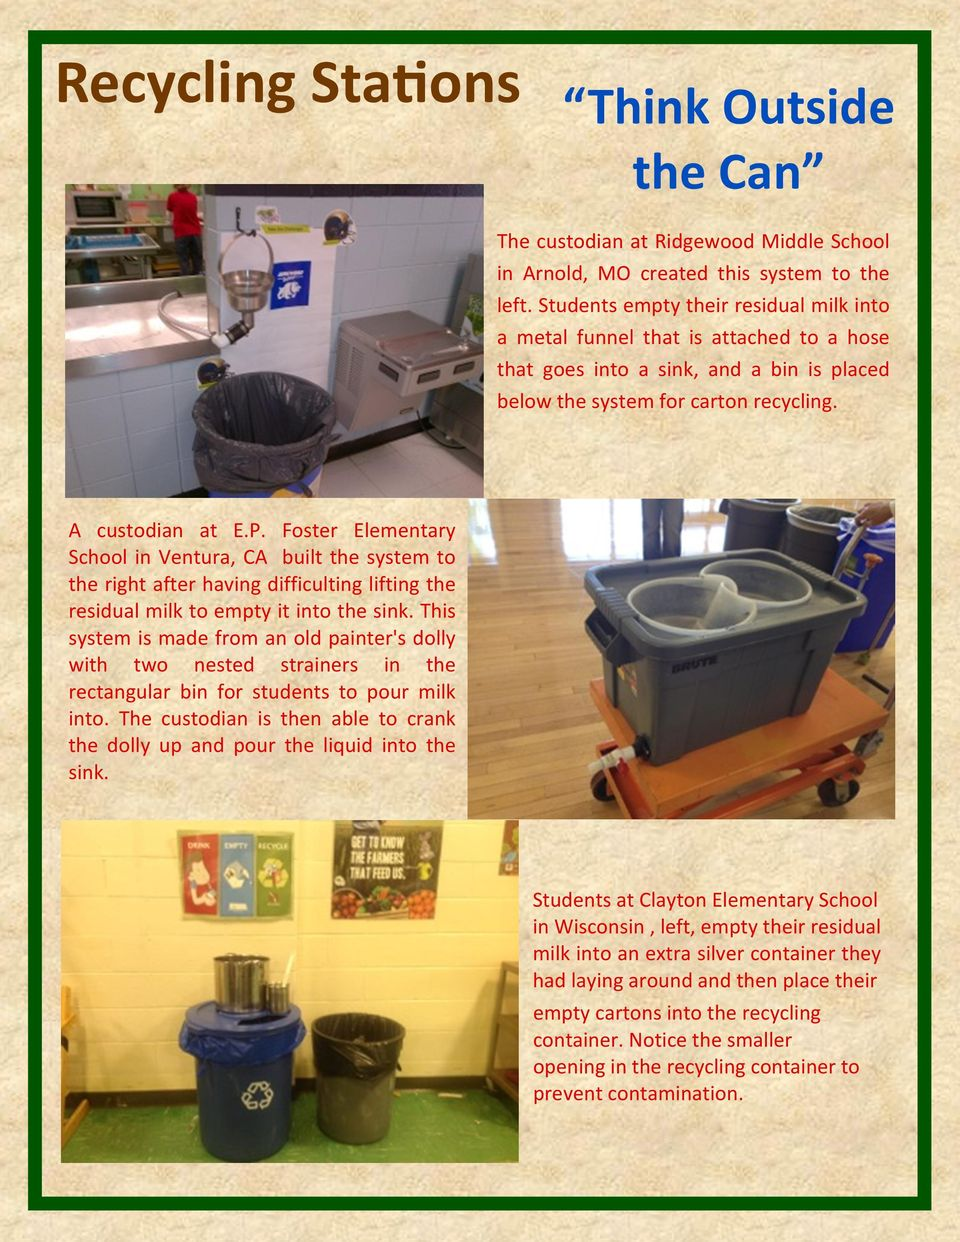 Foster Elementary School in Ventura, CA built the system to the right after having difficulting lifting the residual milk to empty it into the sink.